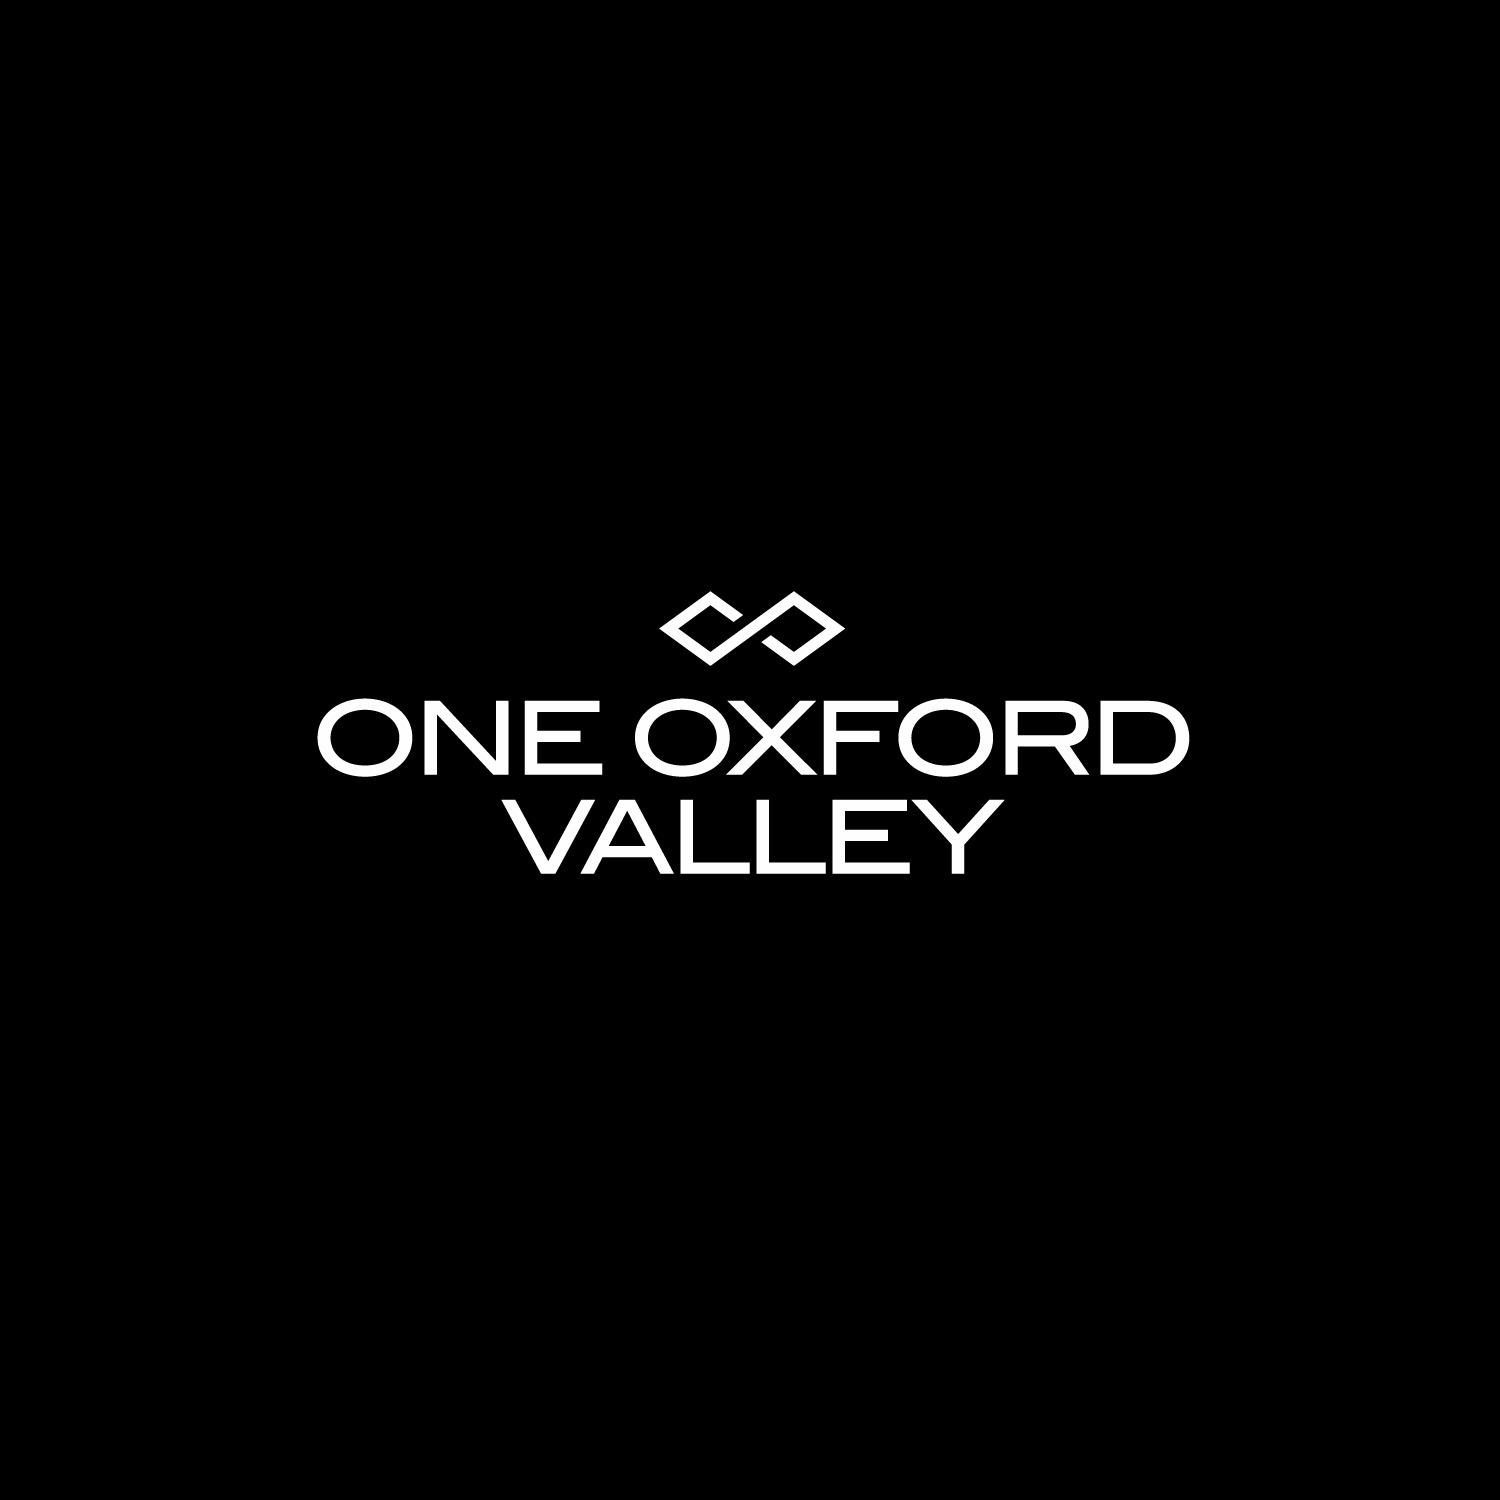 One Oxford Valley